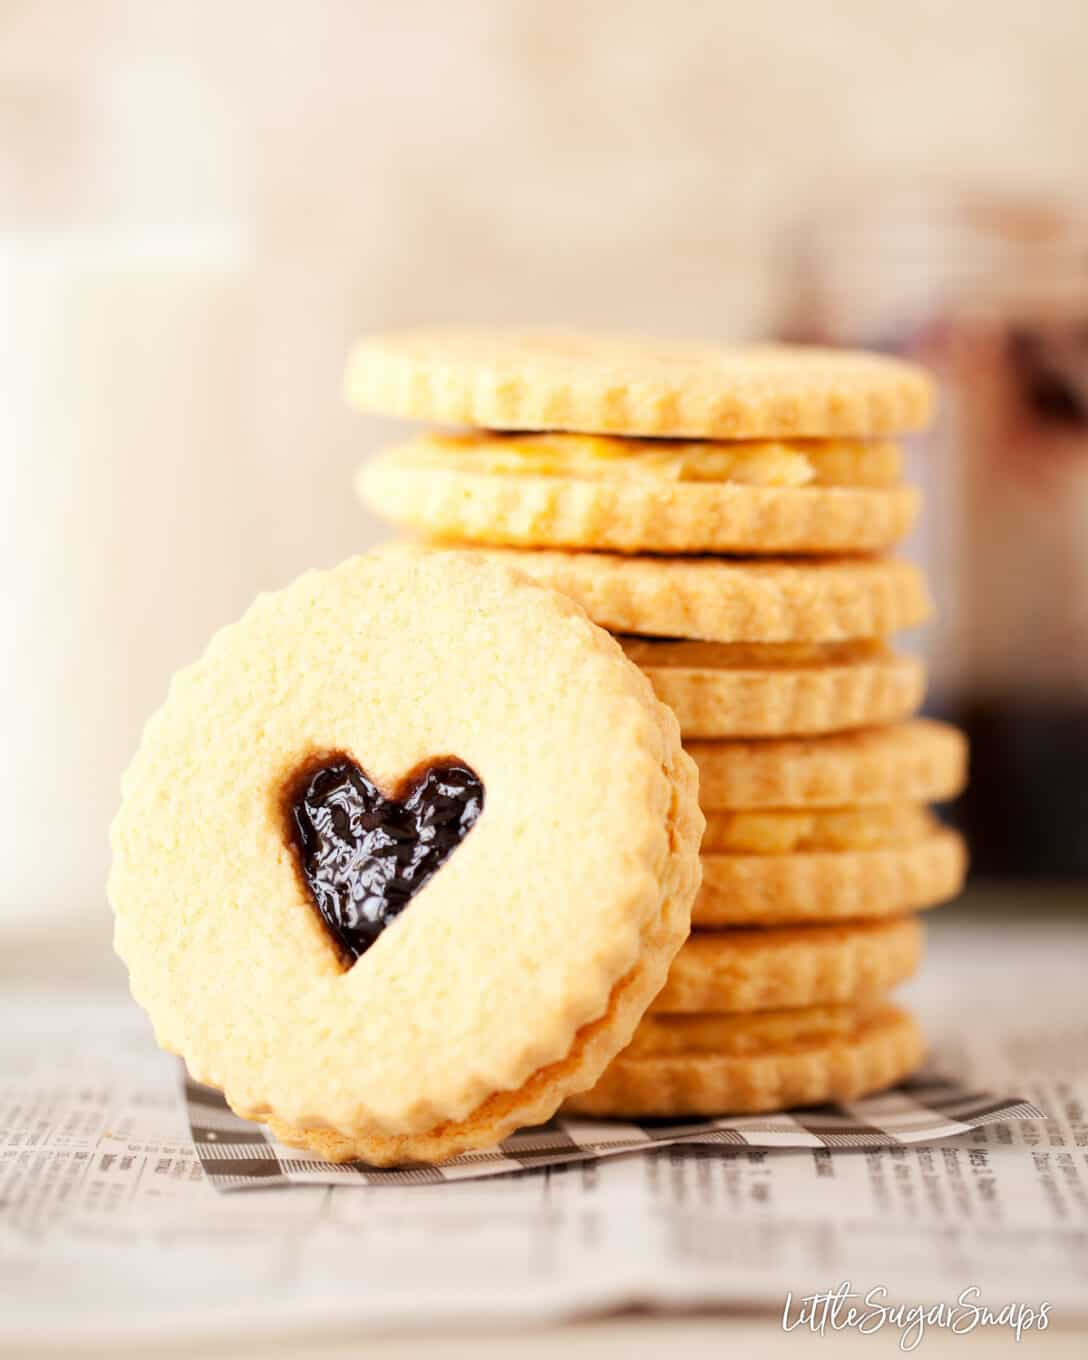 A stack of Custard Creams Biscuits with jam in the middle too. A love heart is cut out of one biscuit that is one it's side facing the camera angle.